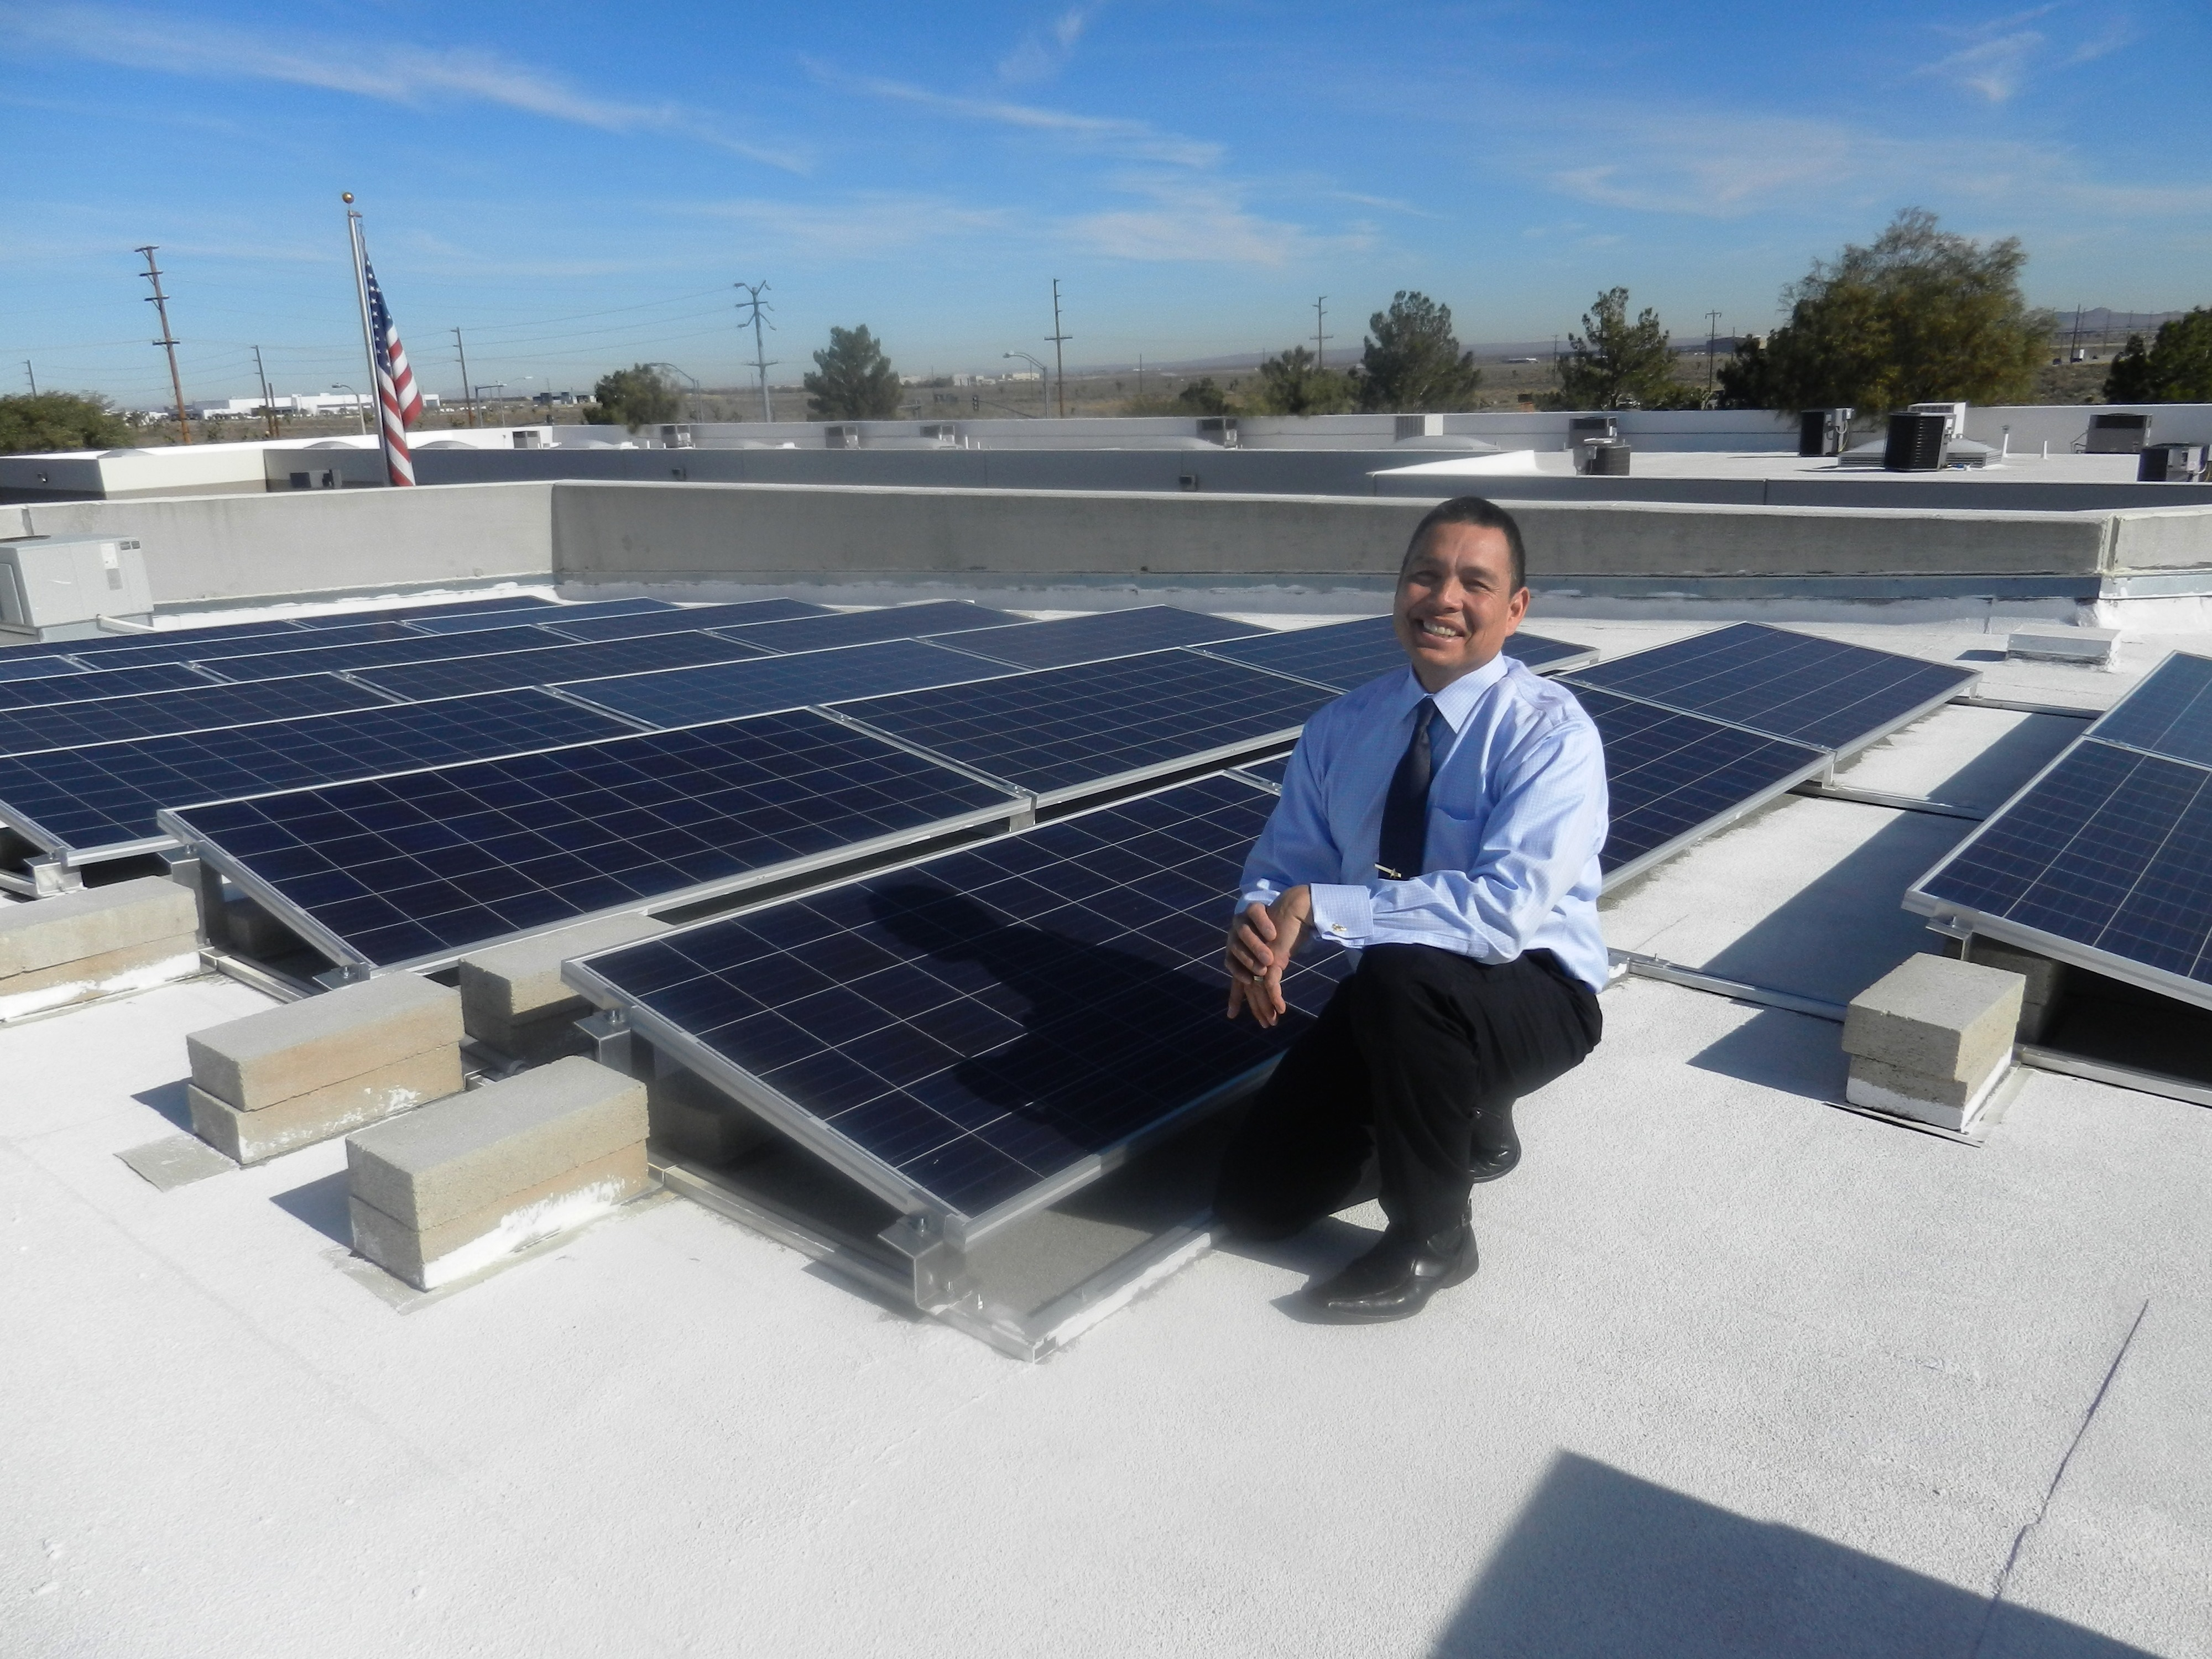 Terry Norris shows us the solar panels on the roof of Precision Labs Calibration.